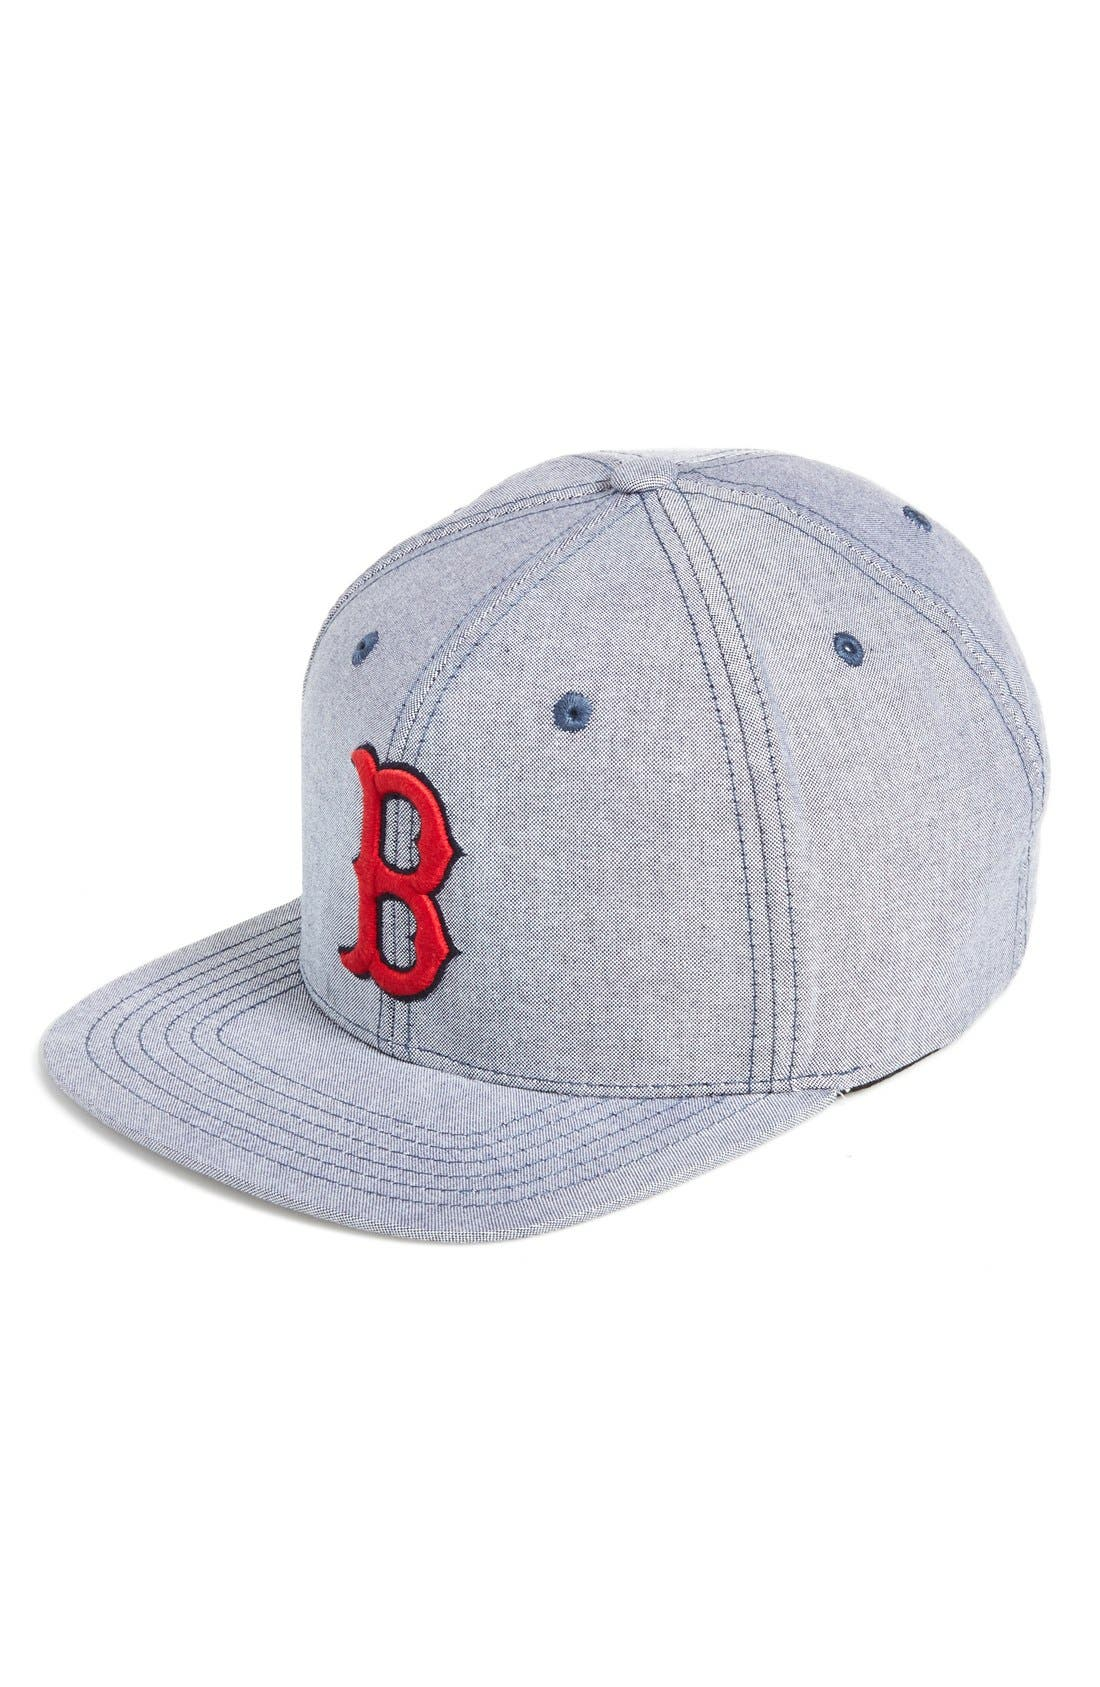 Main Image - American Needle 'Boston Red Sox - The Sound' Baseball Cap